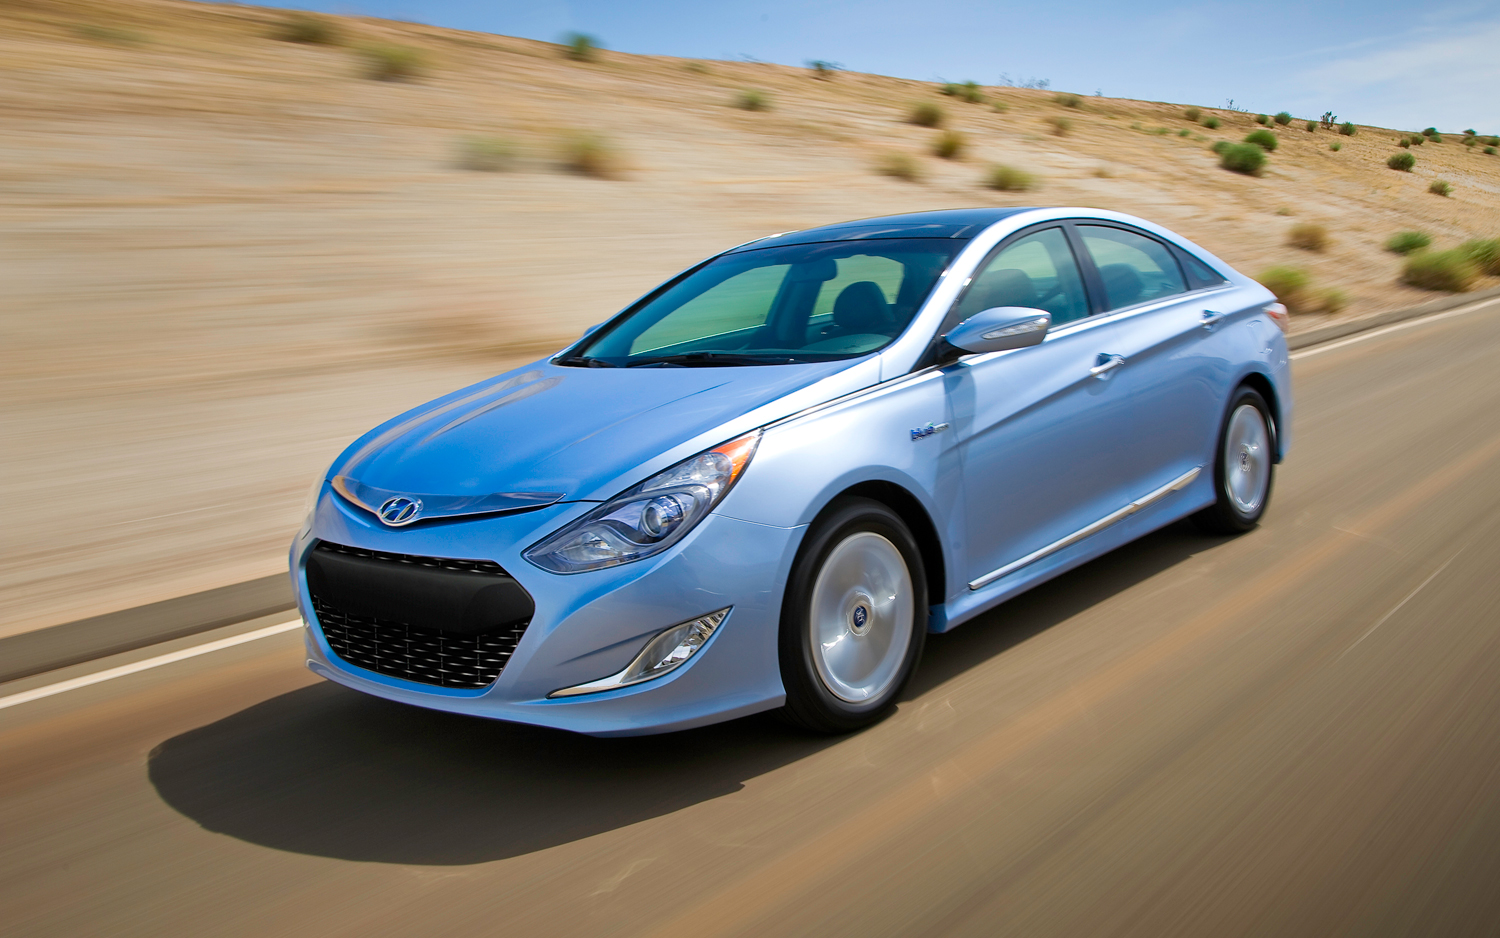 sonata all cardomain hyundai view makemodel at